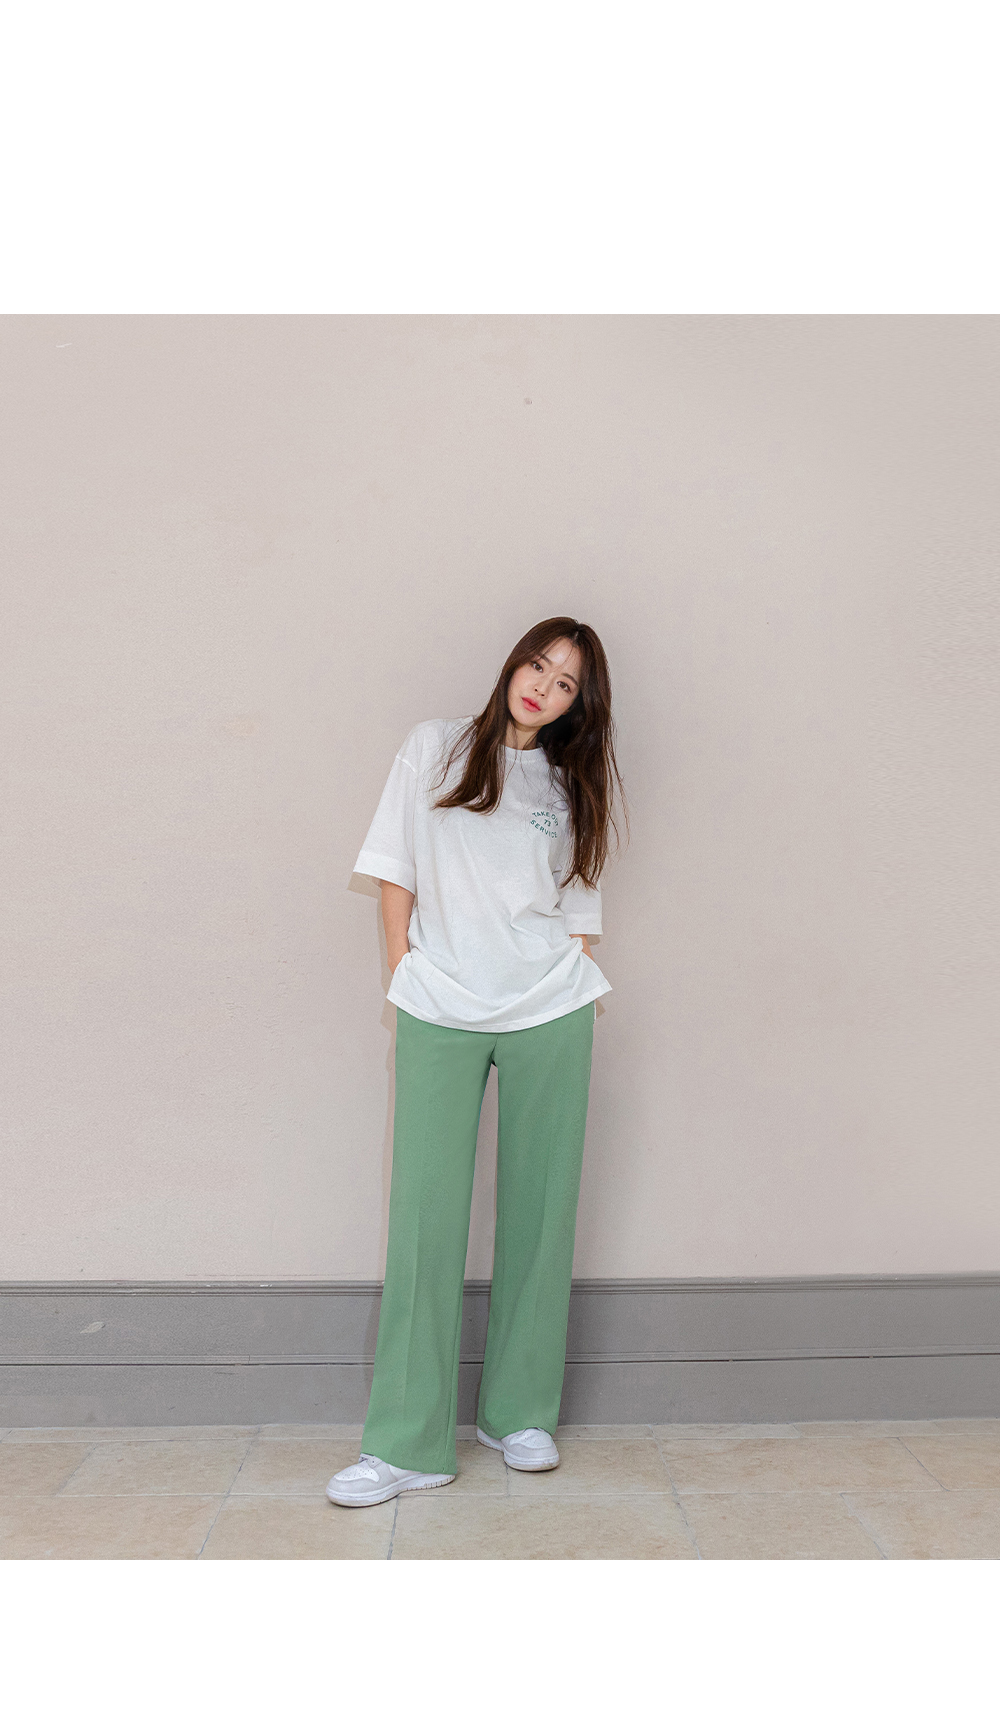 Takeout Short Sleeve T-shirt